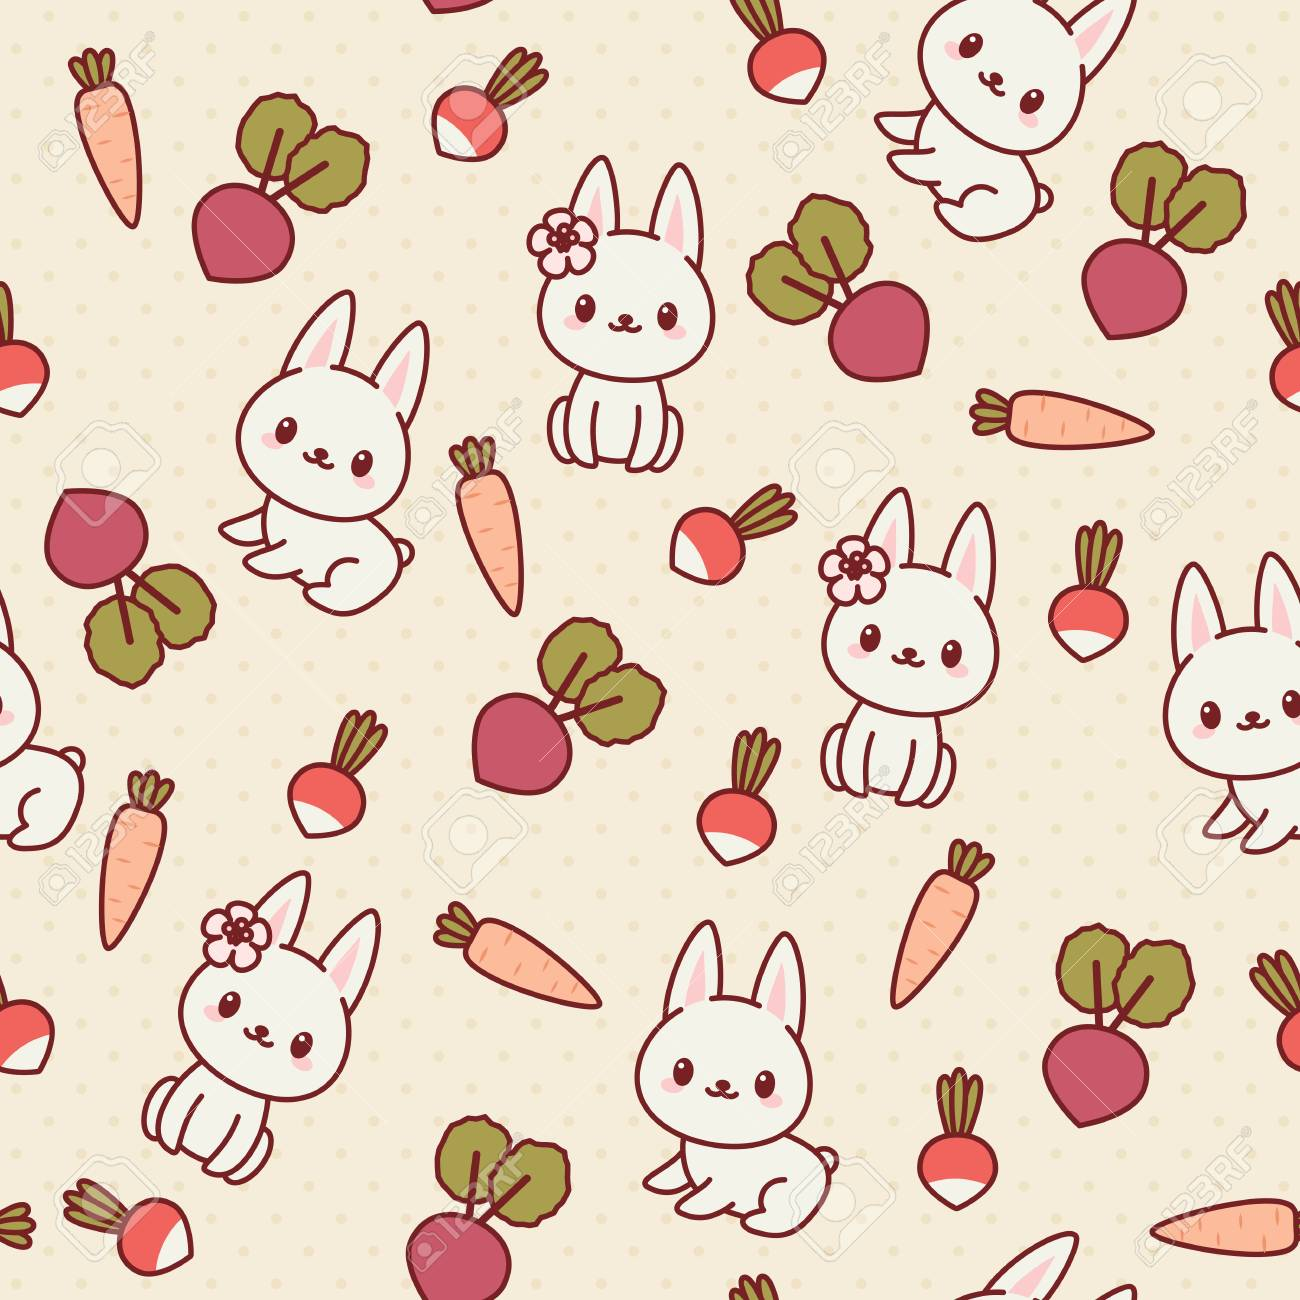 White Bunny Rabbit With Vegetables Kawaii Seamless Wallpaper